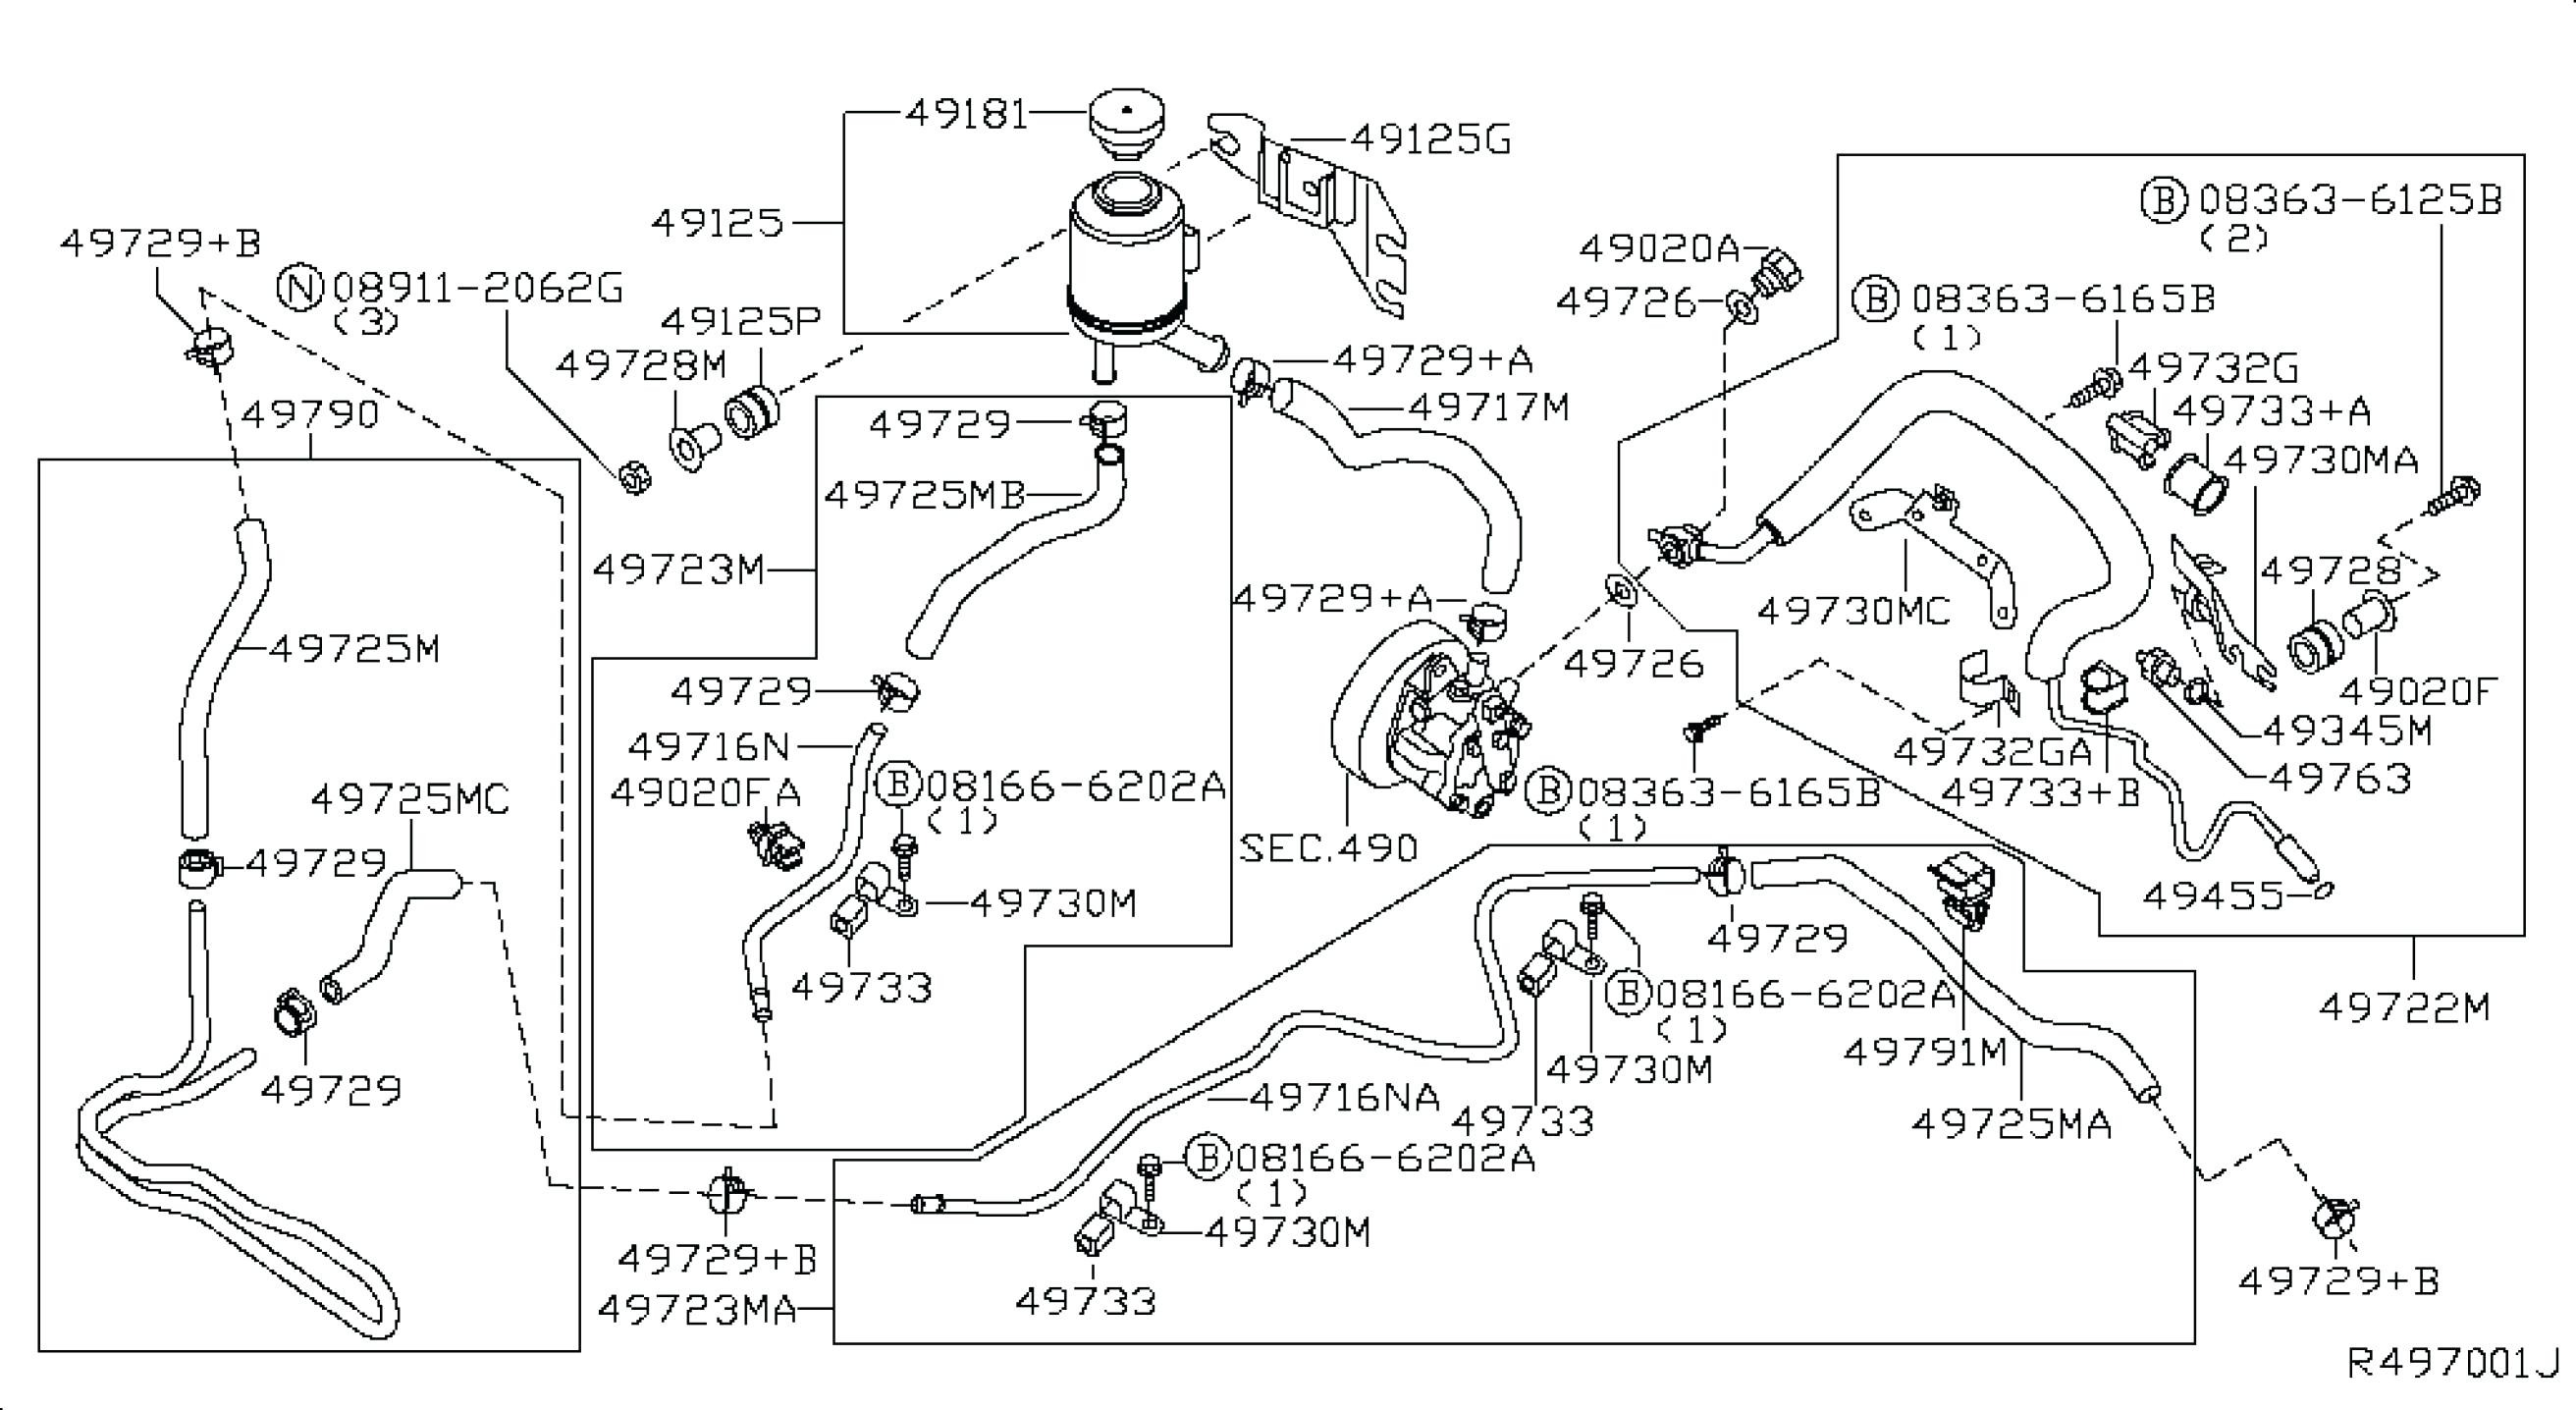 subaru forester parts diagram car stereo centrum bremen fuse box 2002 wiring library engine u2022 for free 2003 location